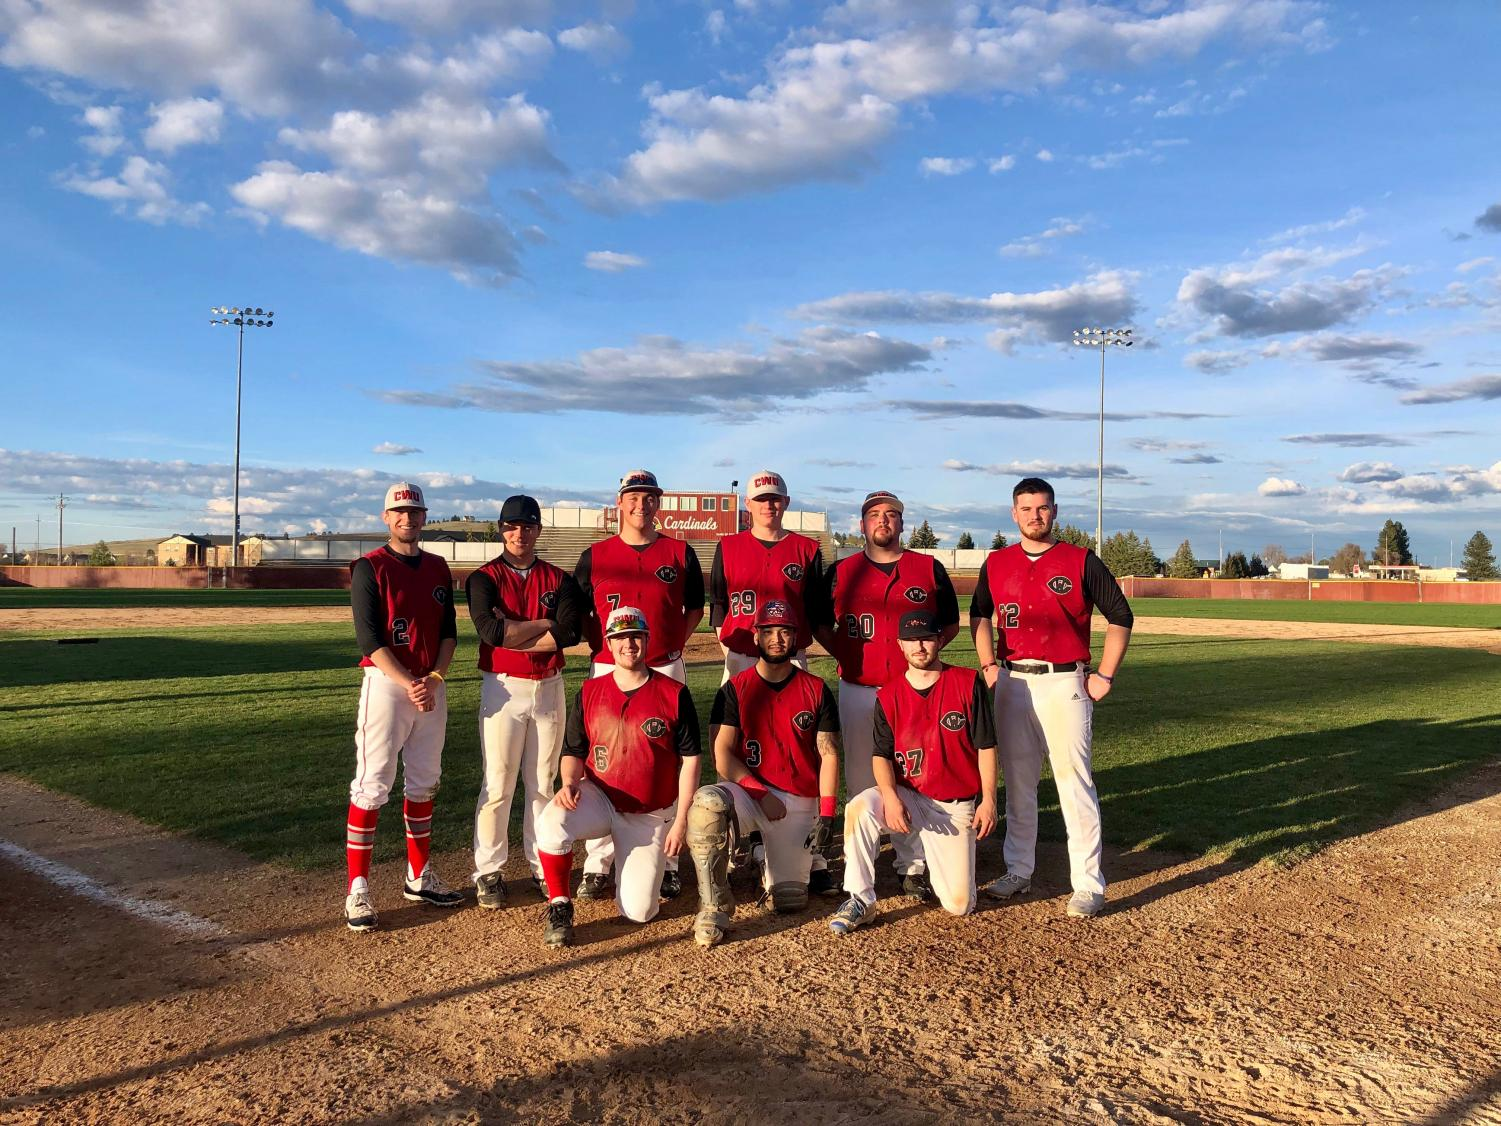 Club baseball had their first game ever in April 2019. The season started late and only allowed for four games to be played. They had about 12 players turn out but expect to have 30 or more in next year's season.